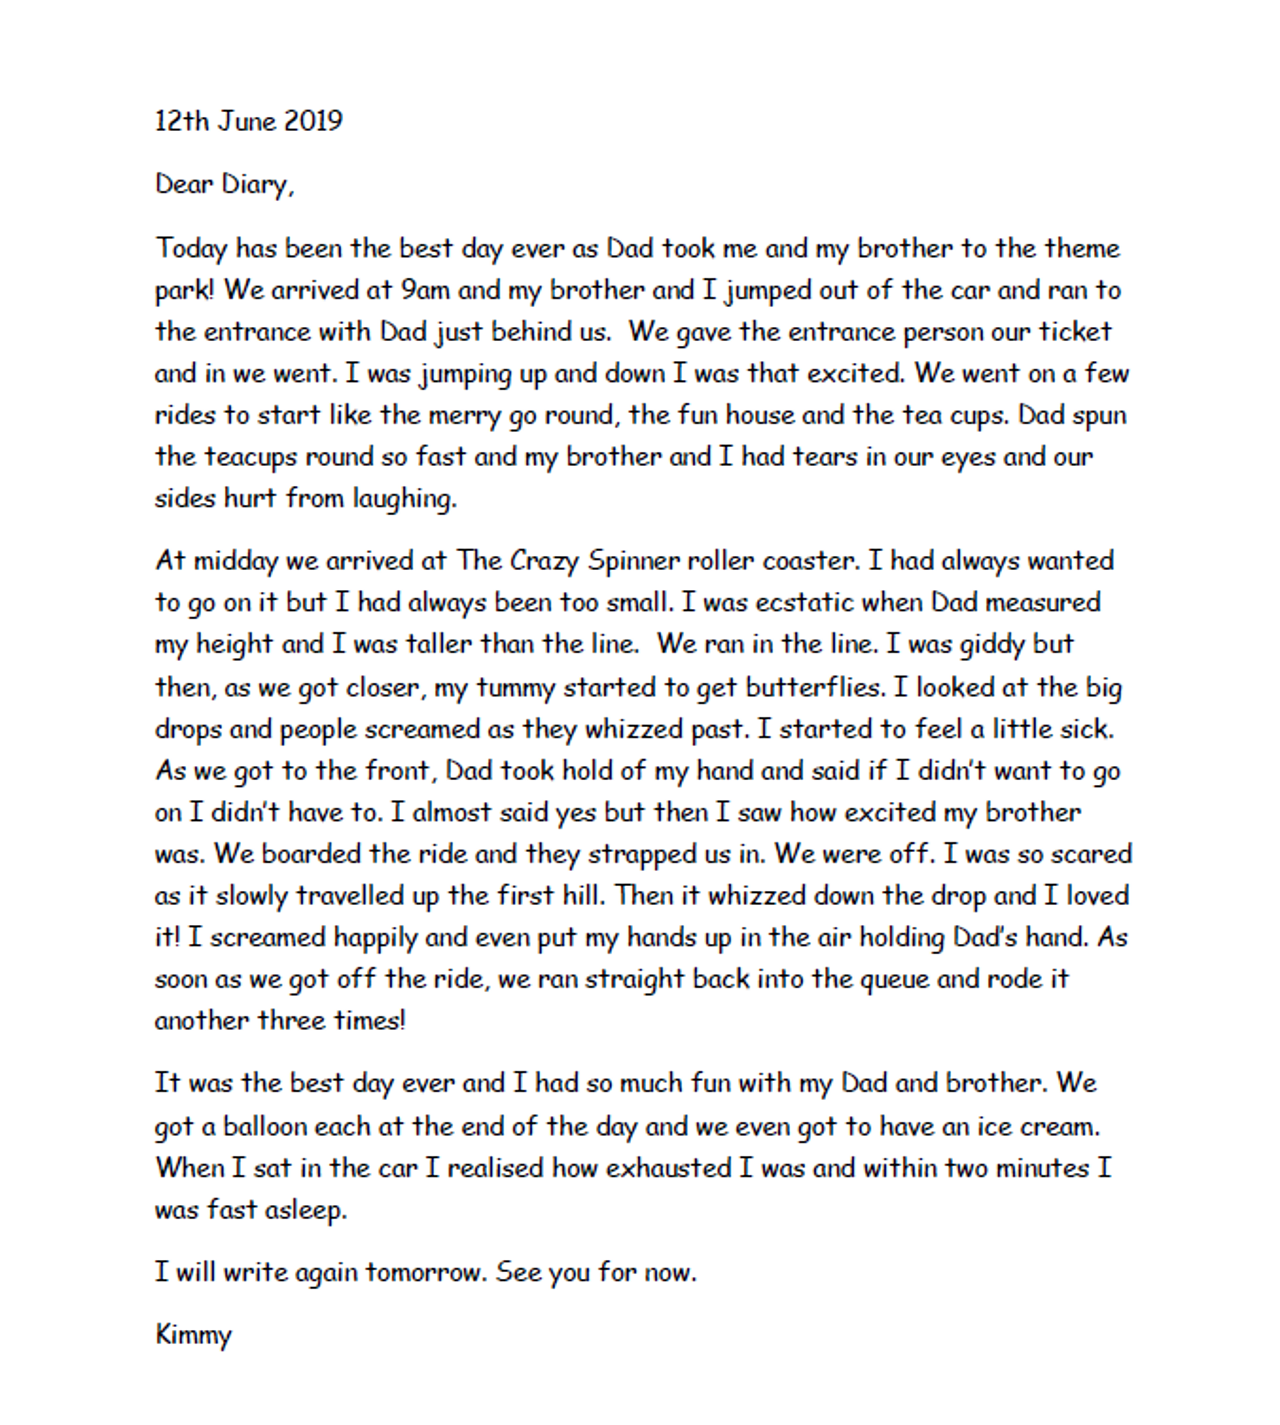 Writing a diary entry - Year 11 - P11 - English - Home Learning with